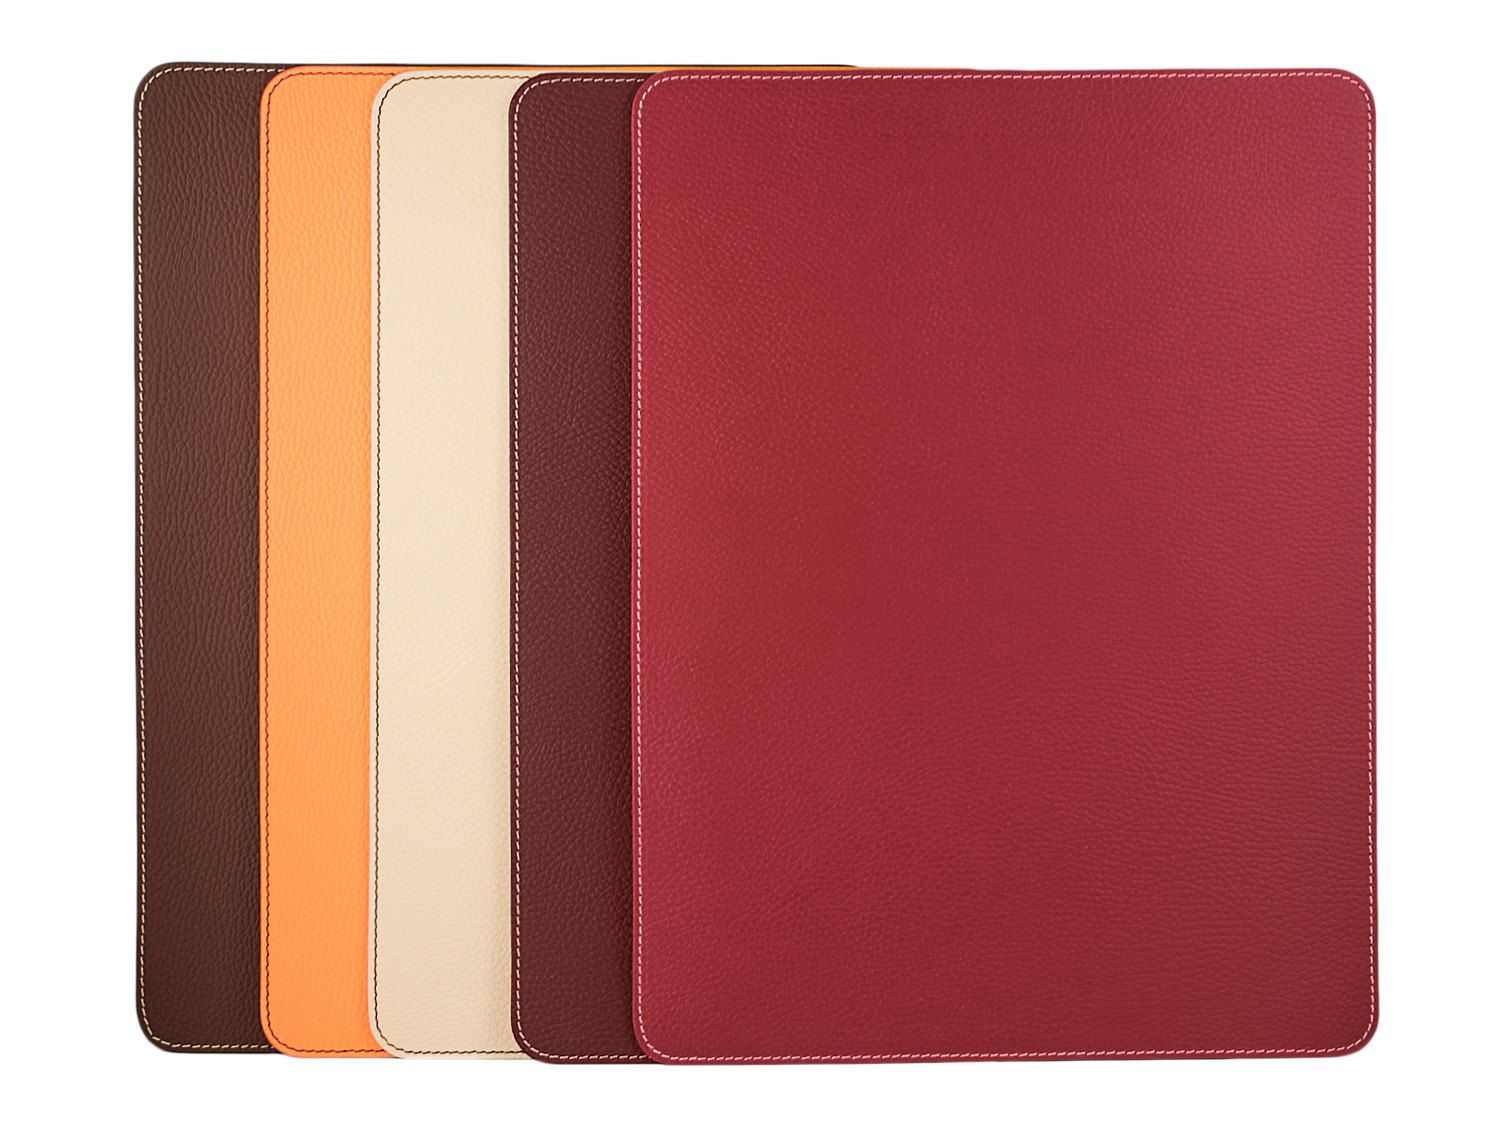 Dining table mats - Placemats Table Mats Orange Red White Burgundy Brown Dine Table Set Placemats